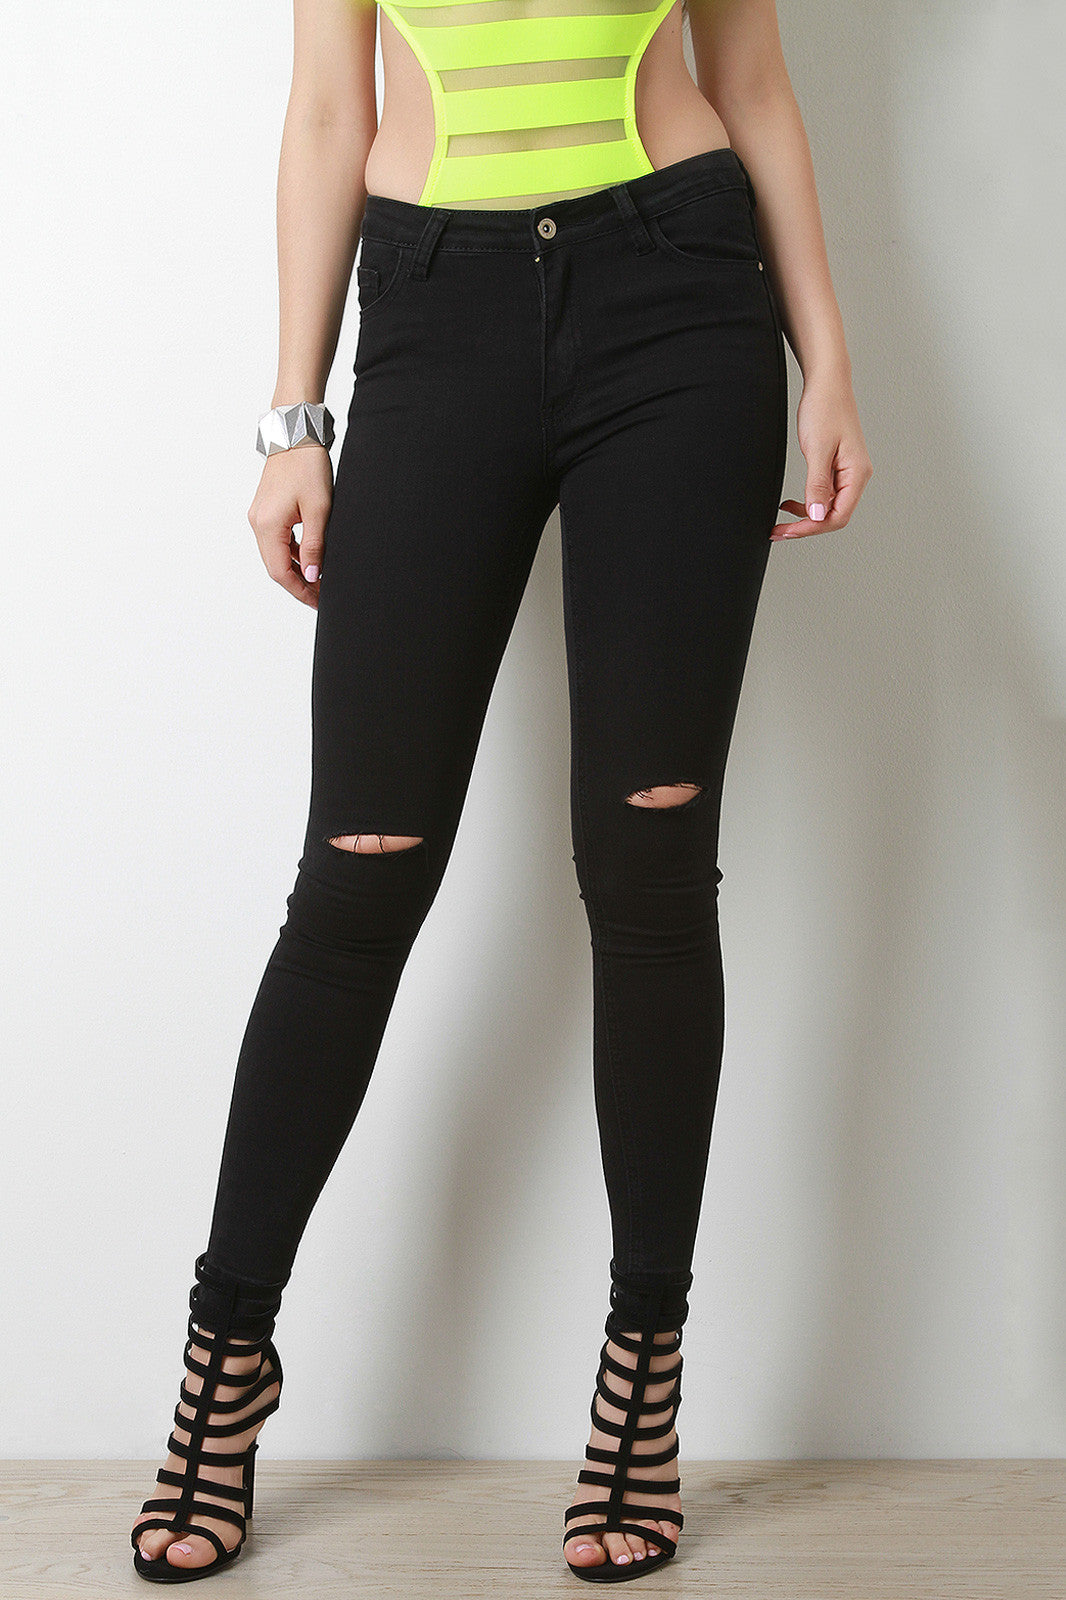 Knee Slit Raw Hem Jeans - Thick 'N' Curvy Shop - 2